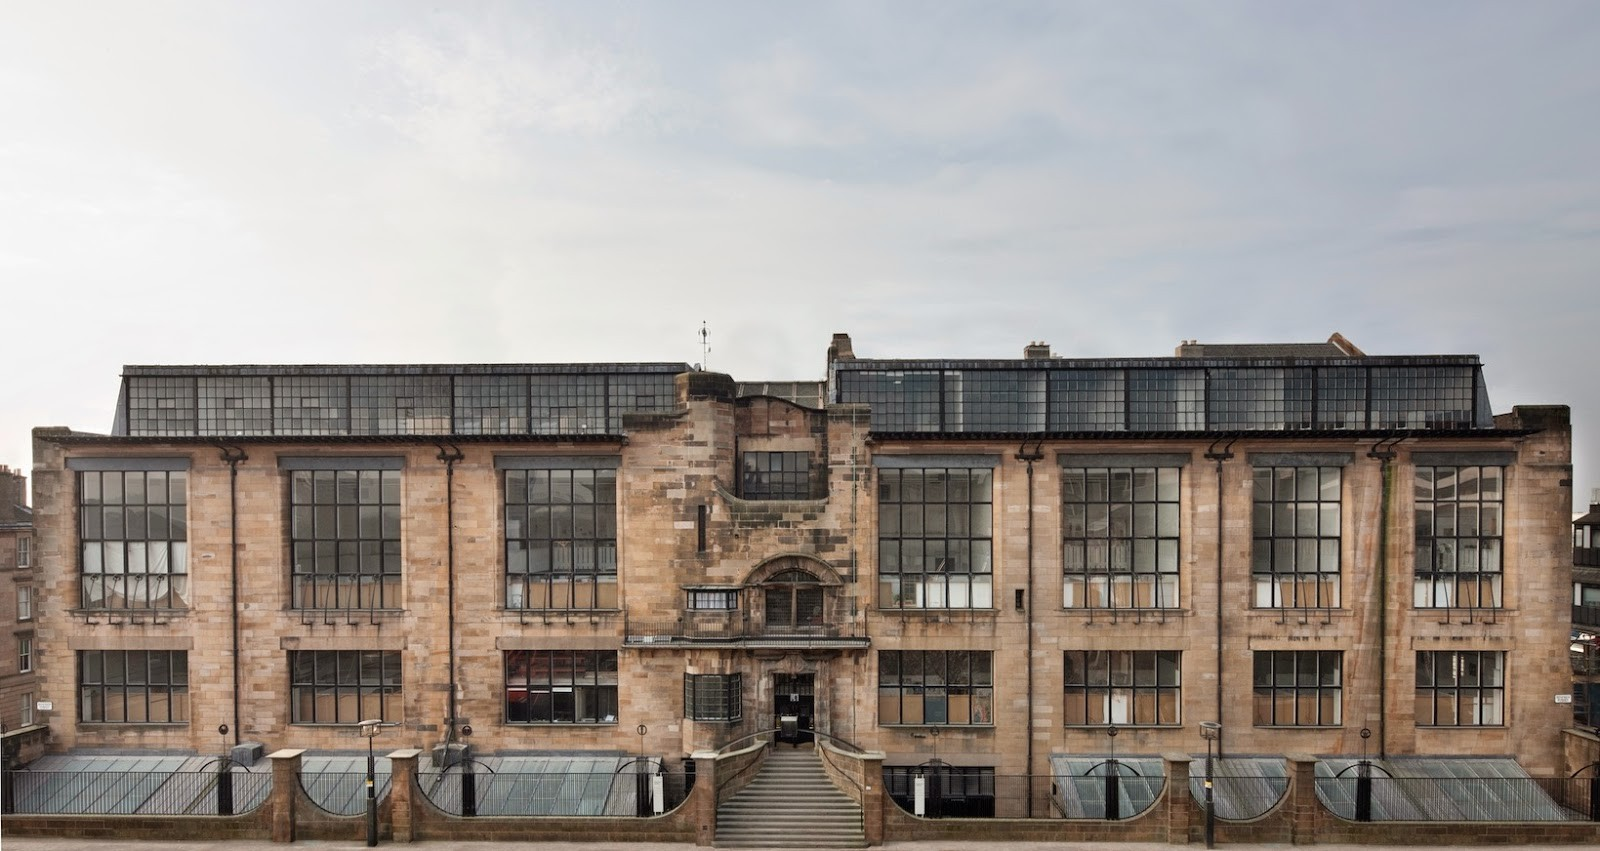 Five Practices Shortlisted To Restore Mackintosh's Glasgow School Of Art, Glasgow School of Art (before the fire). Image © Alan McAteer